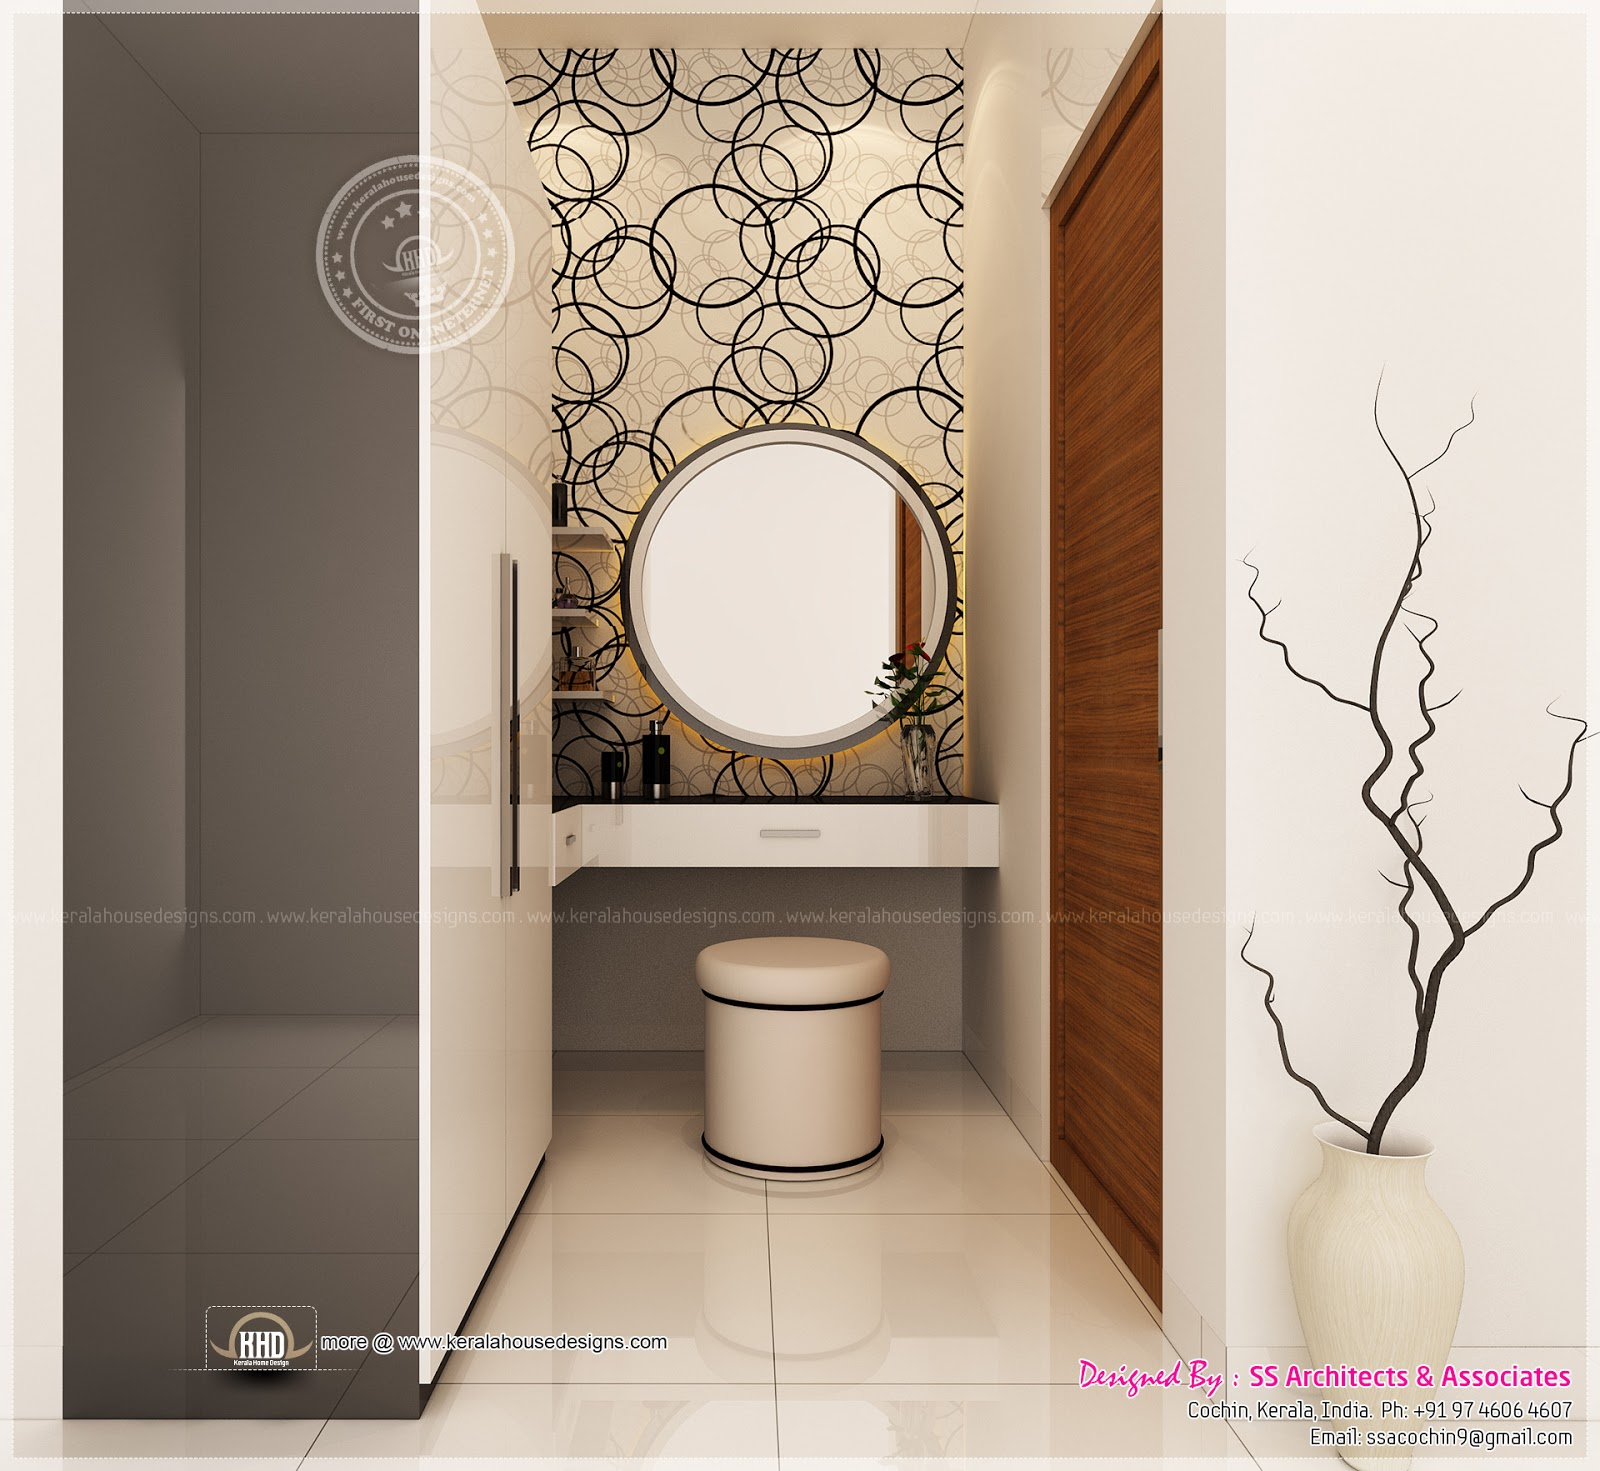 Different dressing table designs by ss architects cochin for Dressing table design 2014